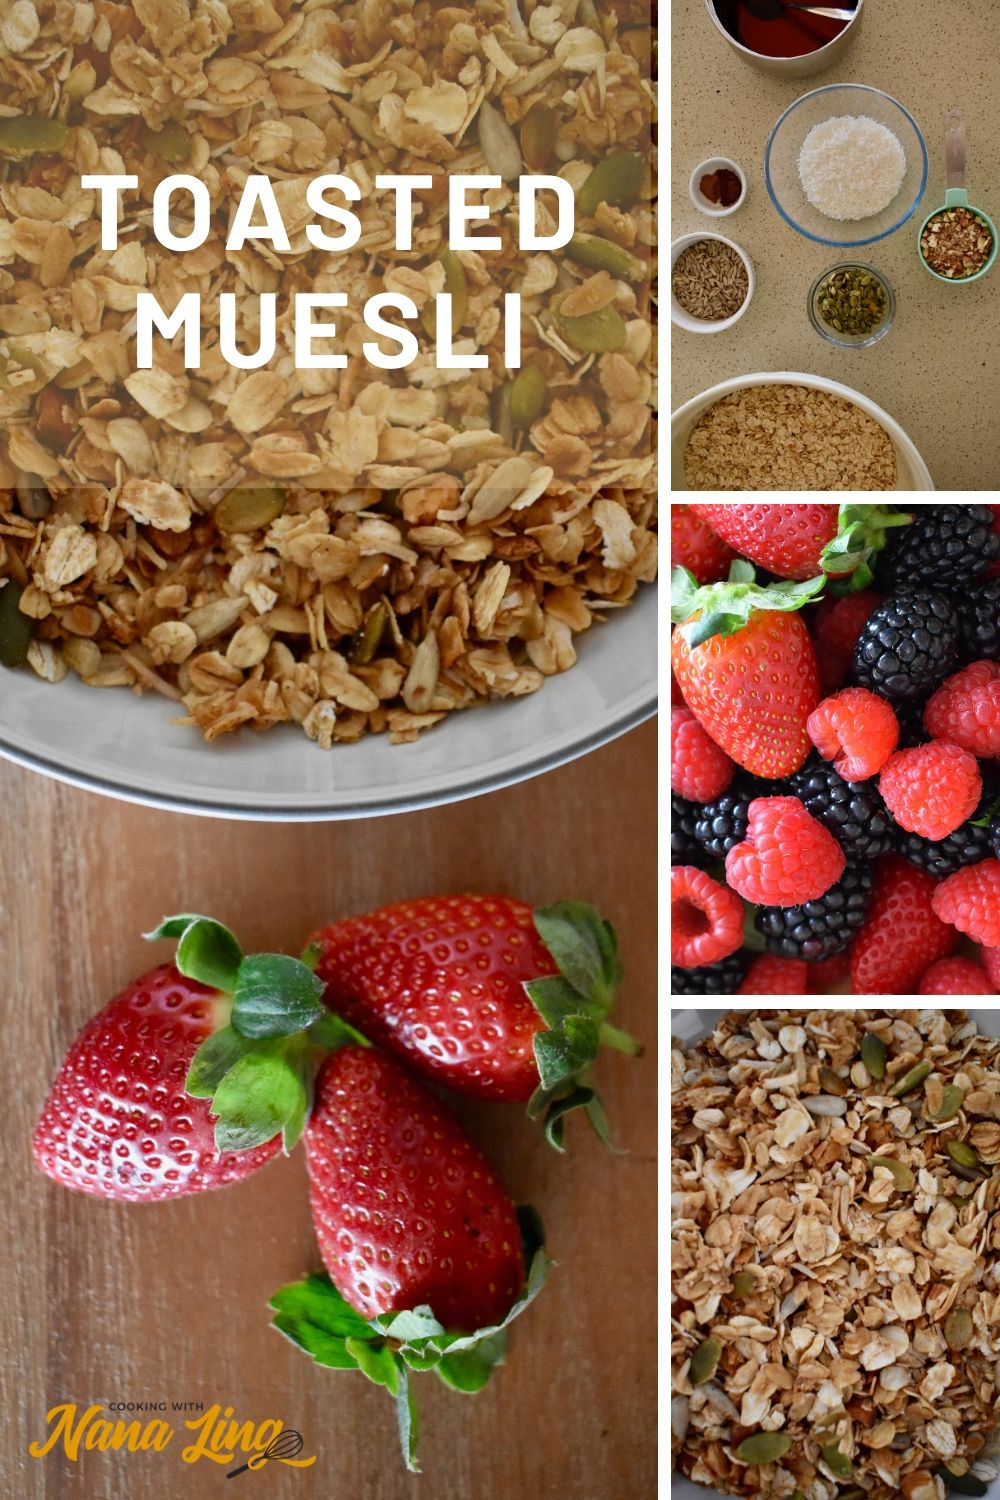 toasted muesli recipe and ingredients